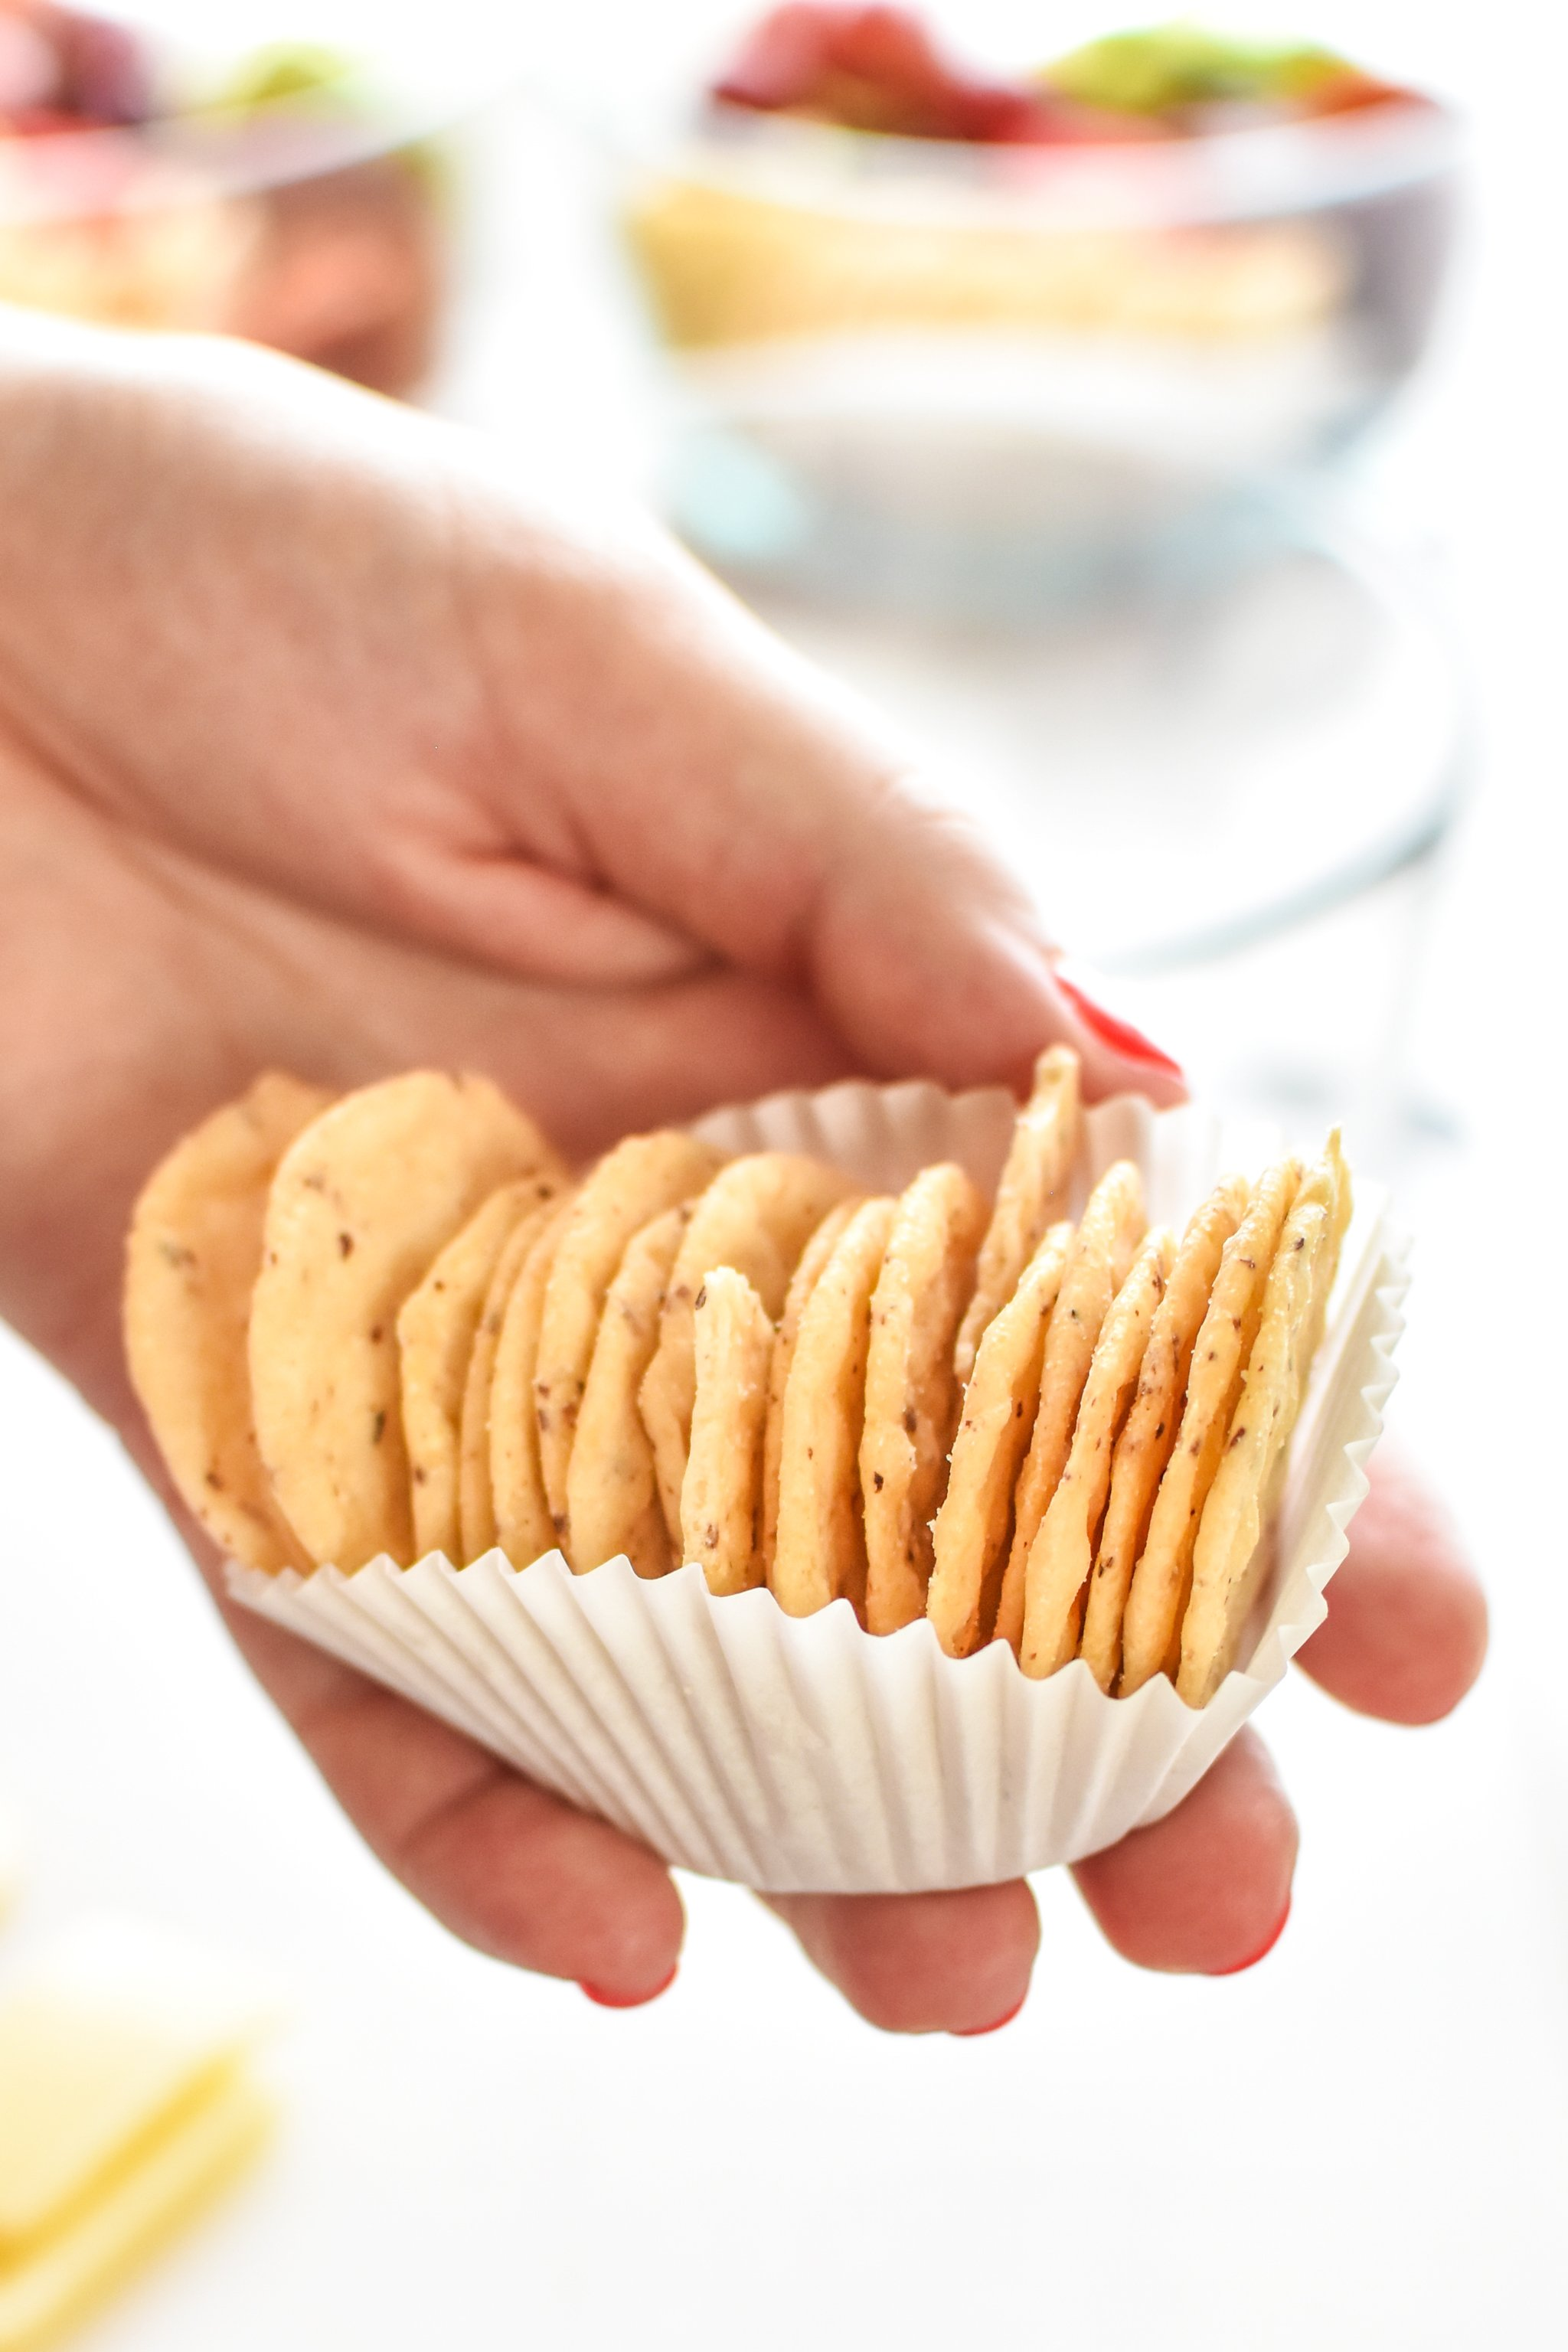 keep your crackers in a separate container or sleeve to reduce moisture